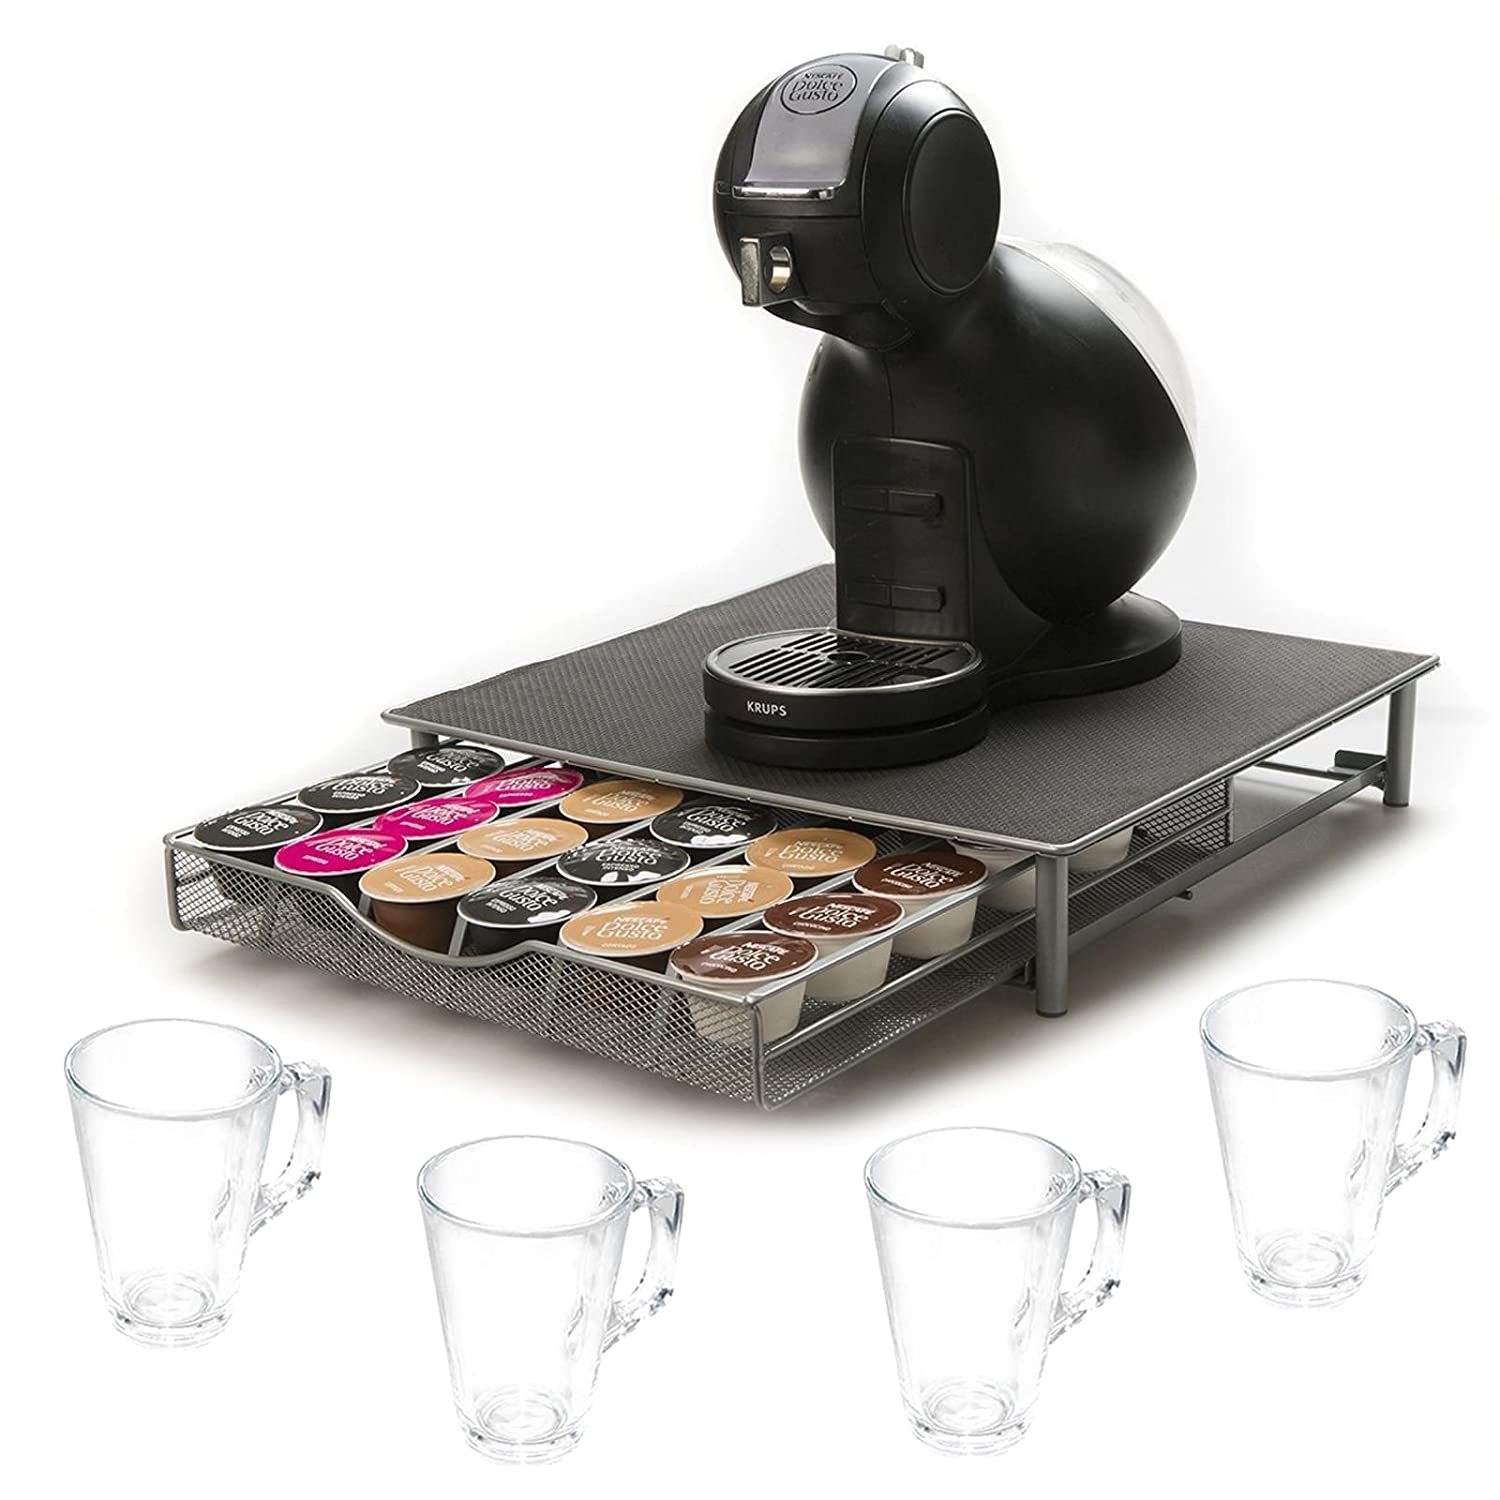 Direct Online Houseware RKW2514-G/RKG2248-S4 Coffee Capsule Drawer and Glasses Set, Grey